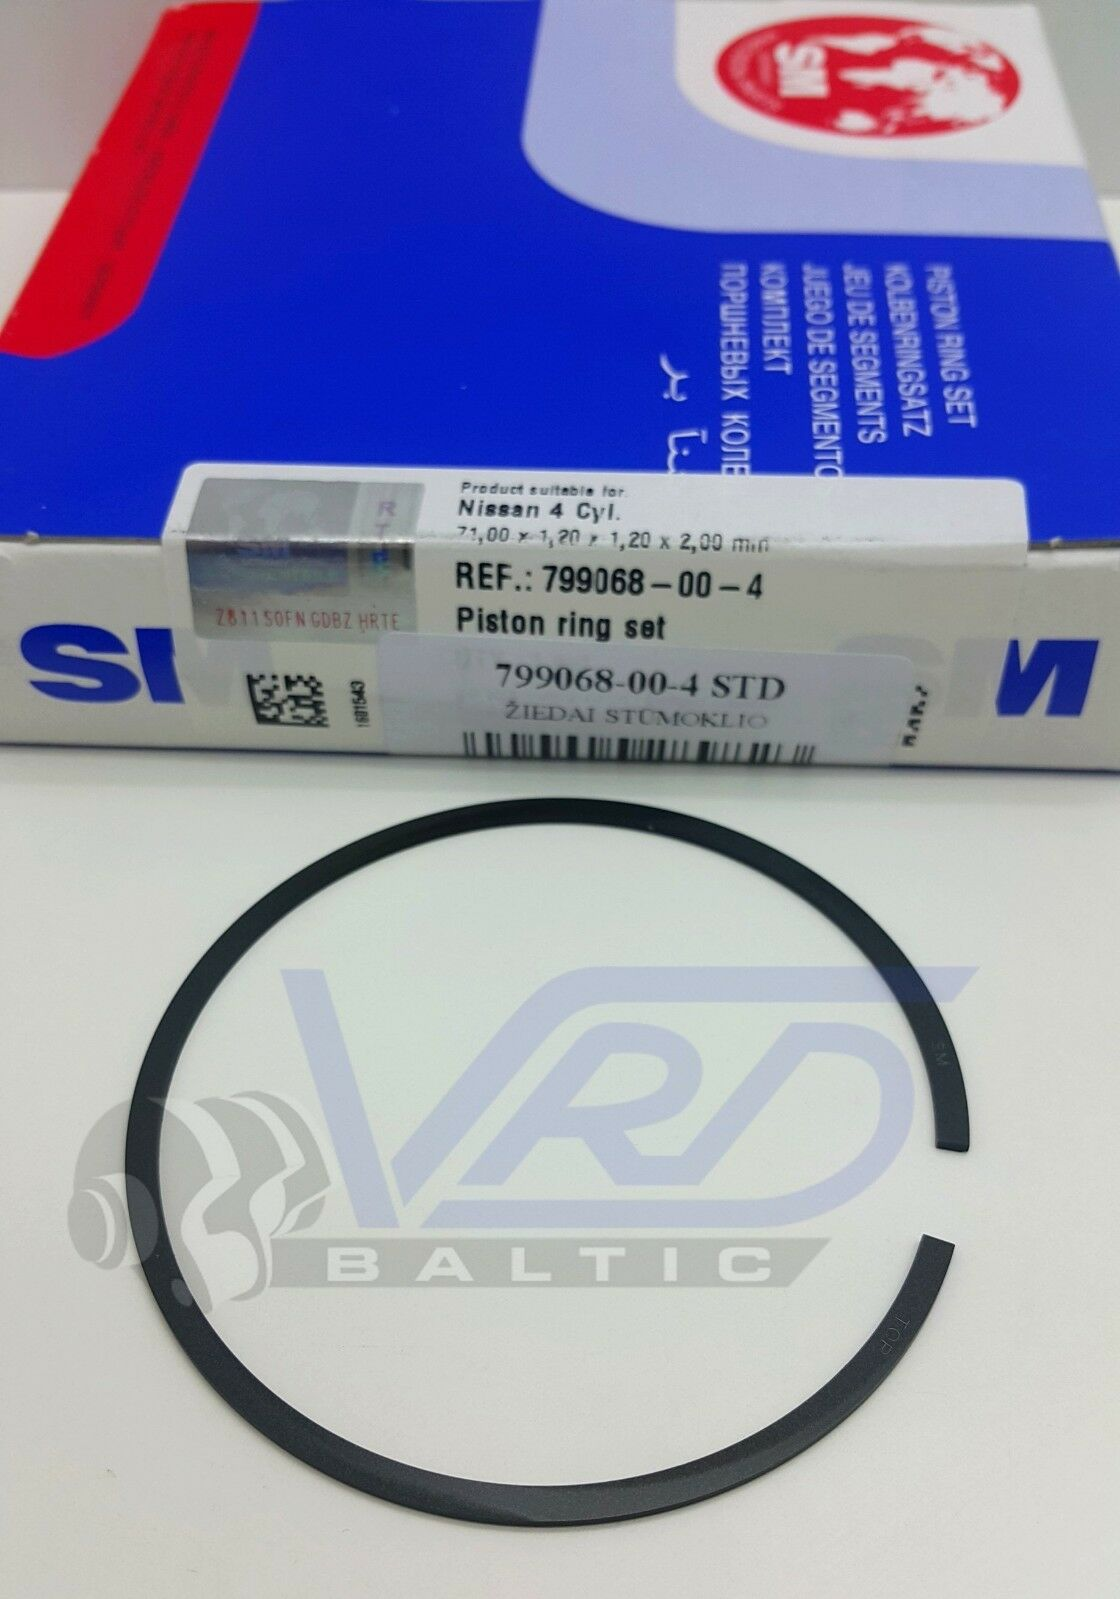 PISTON RINGS SET STD FOR TOYOTA ECHO VITZ YARIS 1.0 16V 1SZ-FE 4 CYL